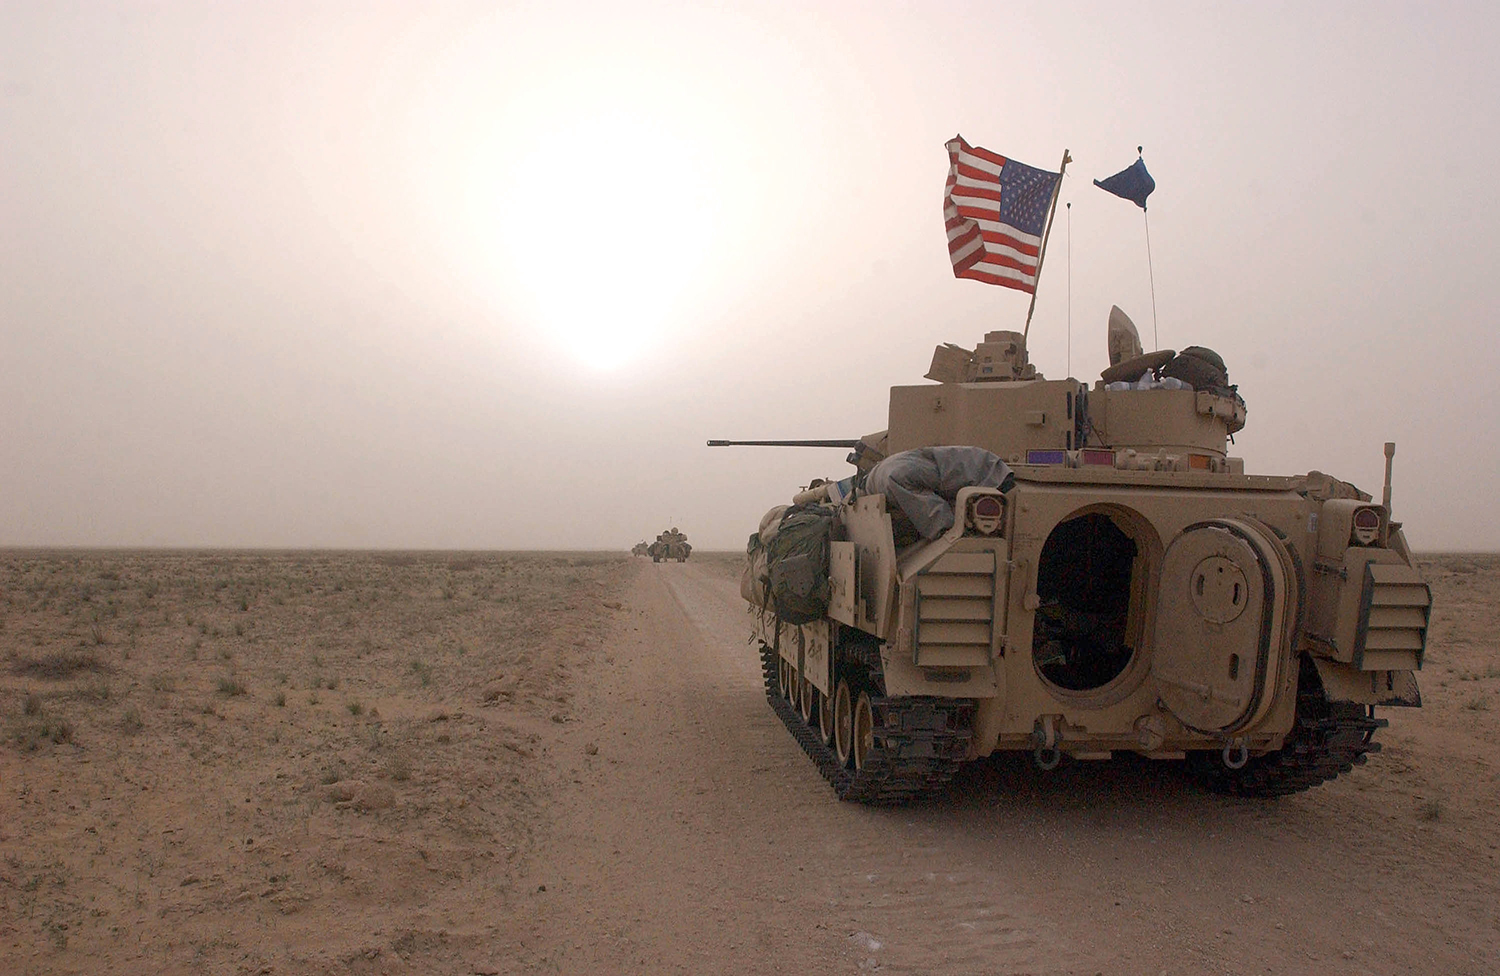 U.S. Army 3rd Division Bradley fighting vehicles take up a position along a road inside the demilitarized zone between Kuwait and Iraq on March 19, 2003, ahead of the invasion of Iraq.